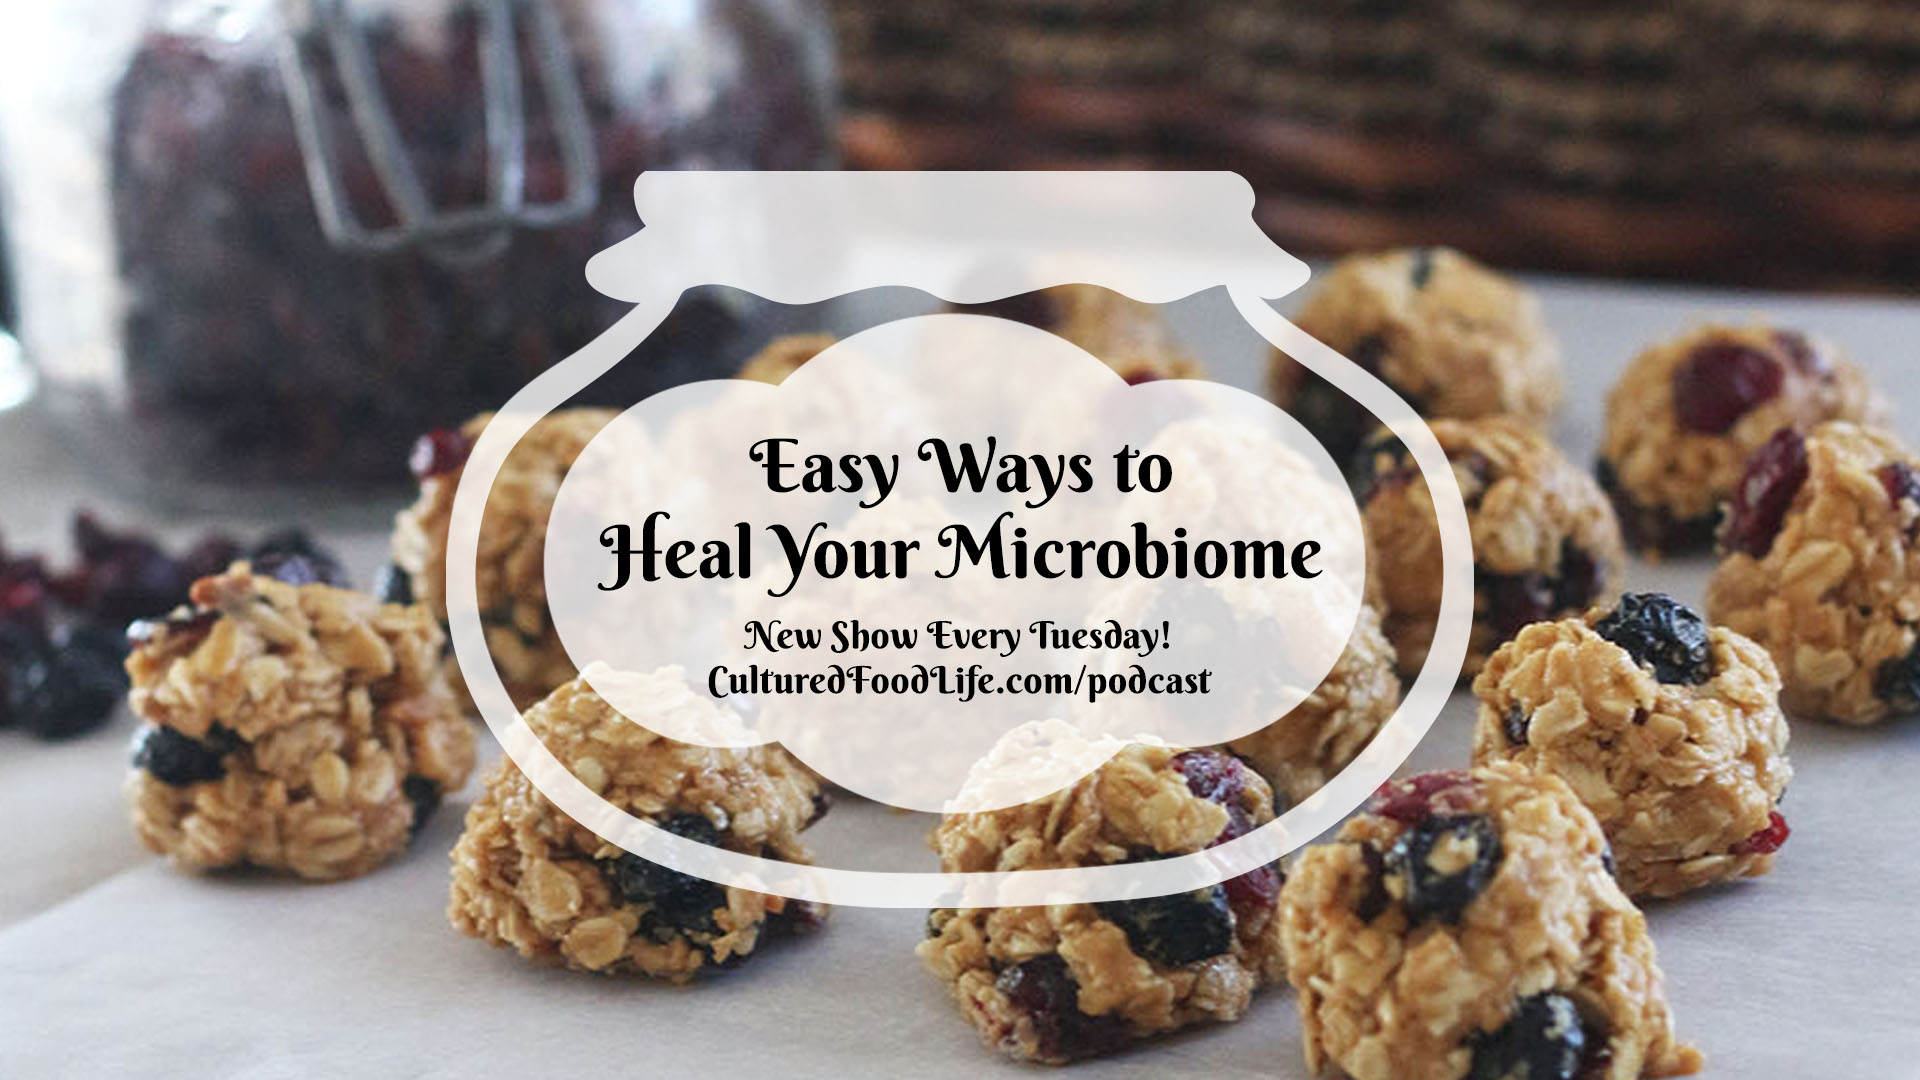 Easy Ways to Heal Your Microbiome Full